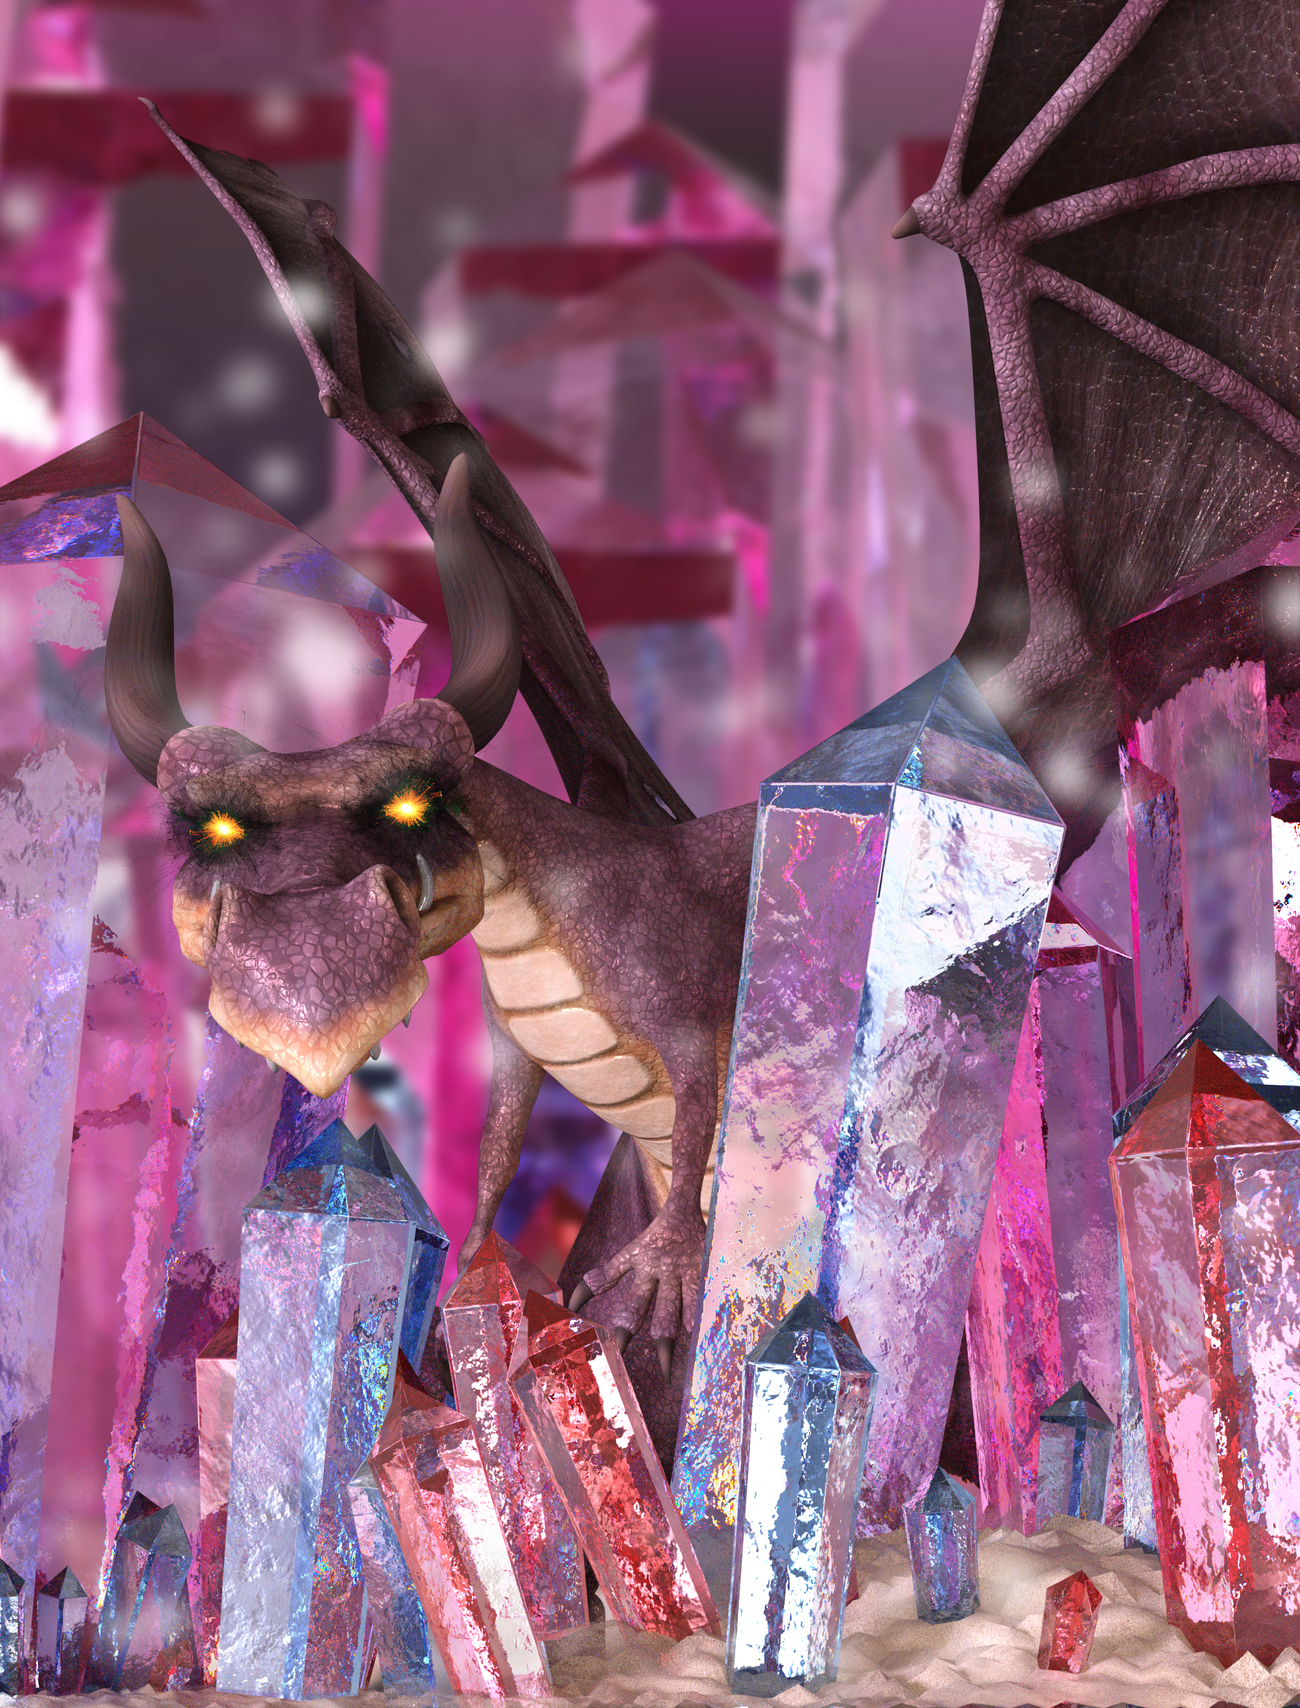 World of Glass Crystal Spires by Arki